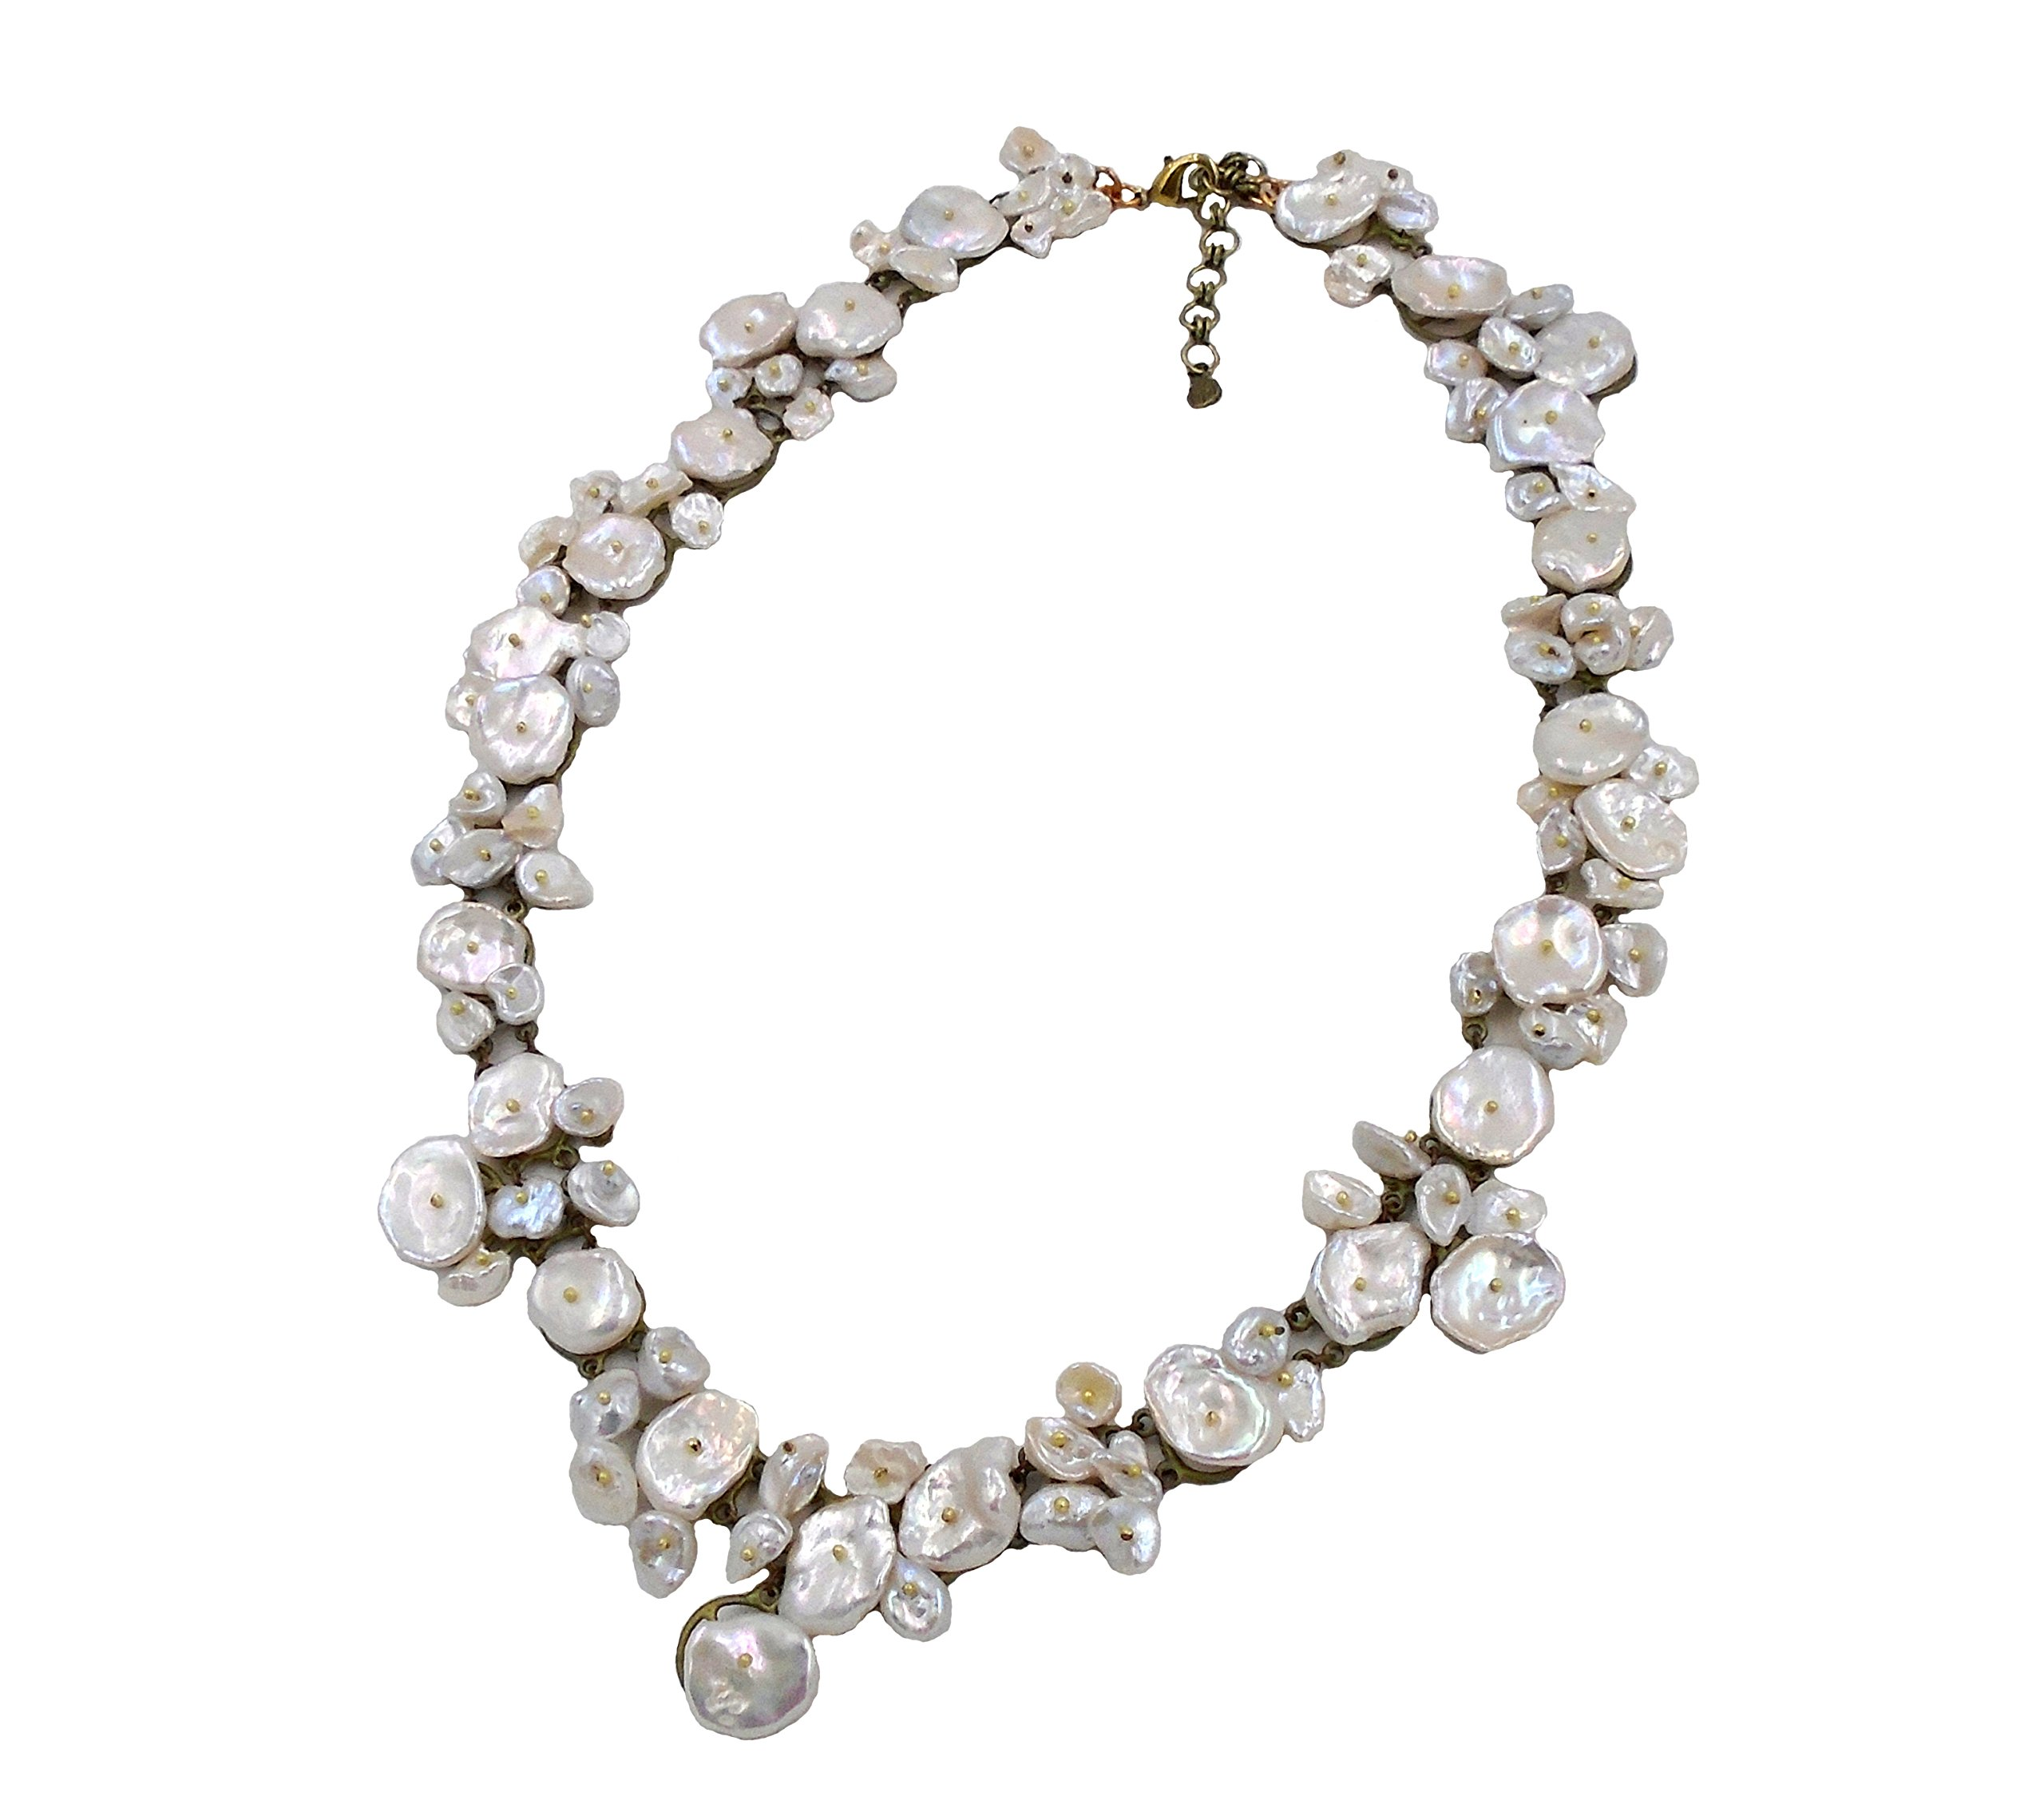 Michael Michaud Silver Dollar Statement Necklace by for Silver Seasons…